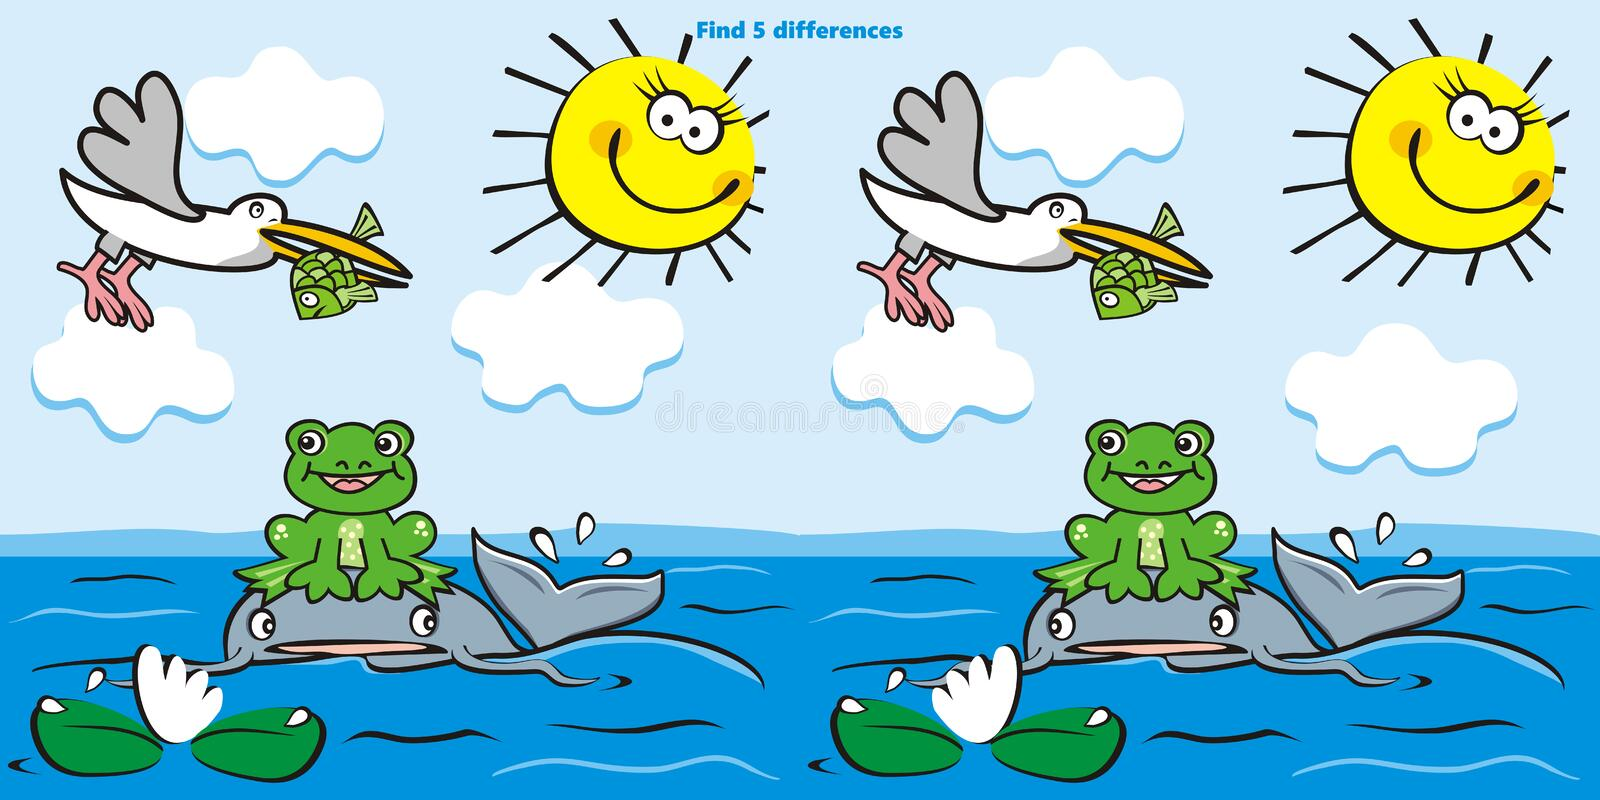 Board game, find five differences, water animals, eps vector illustration